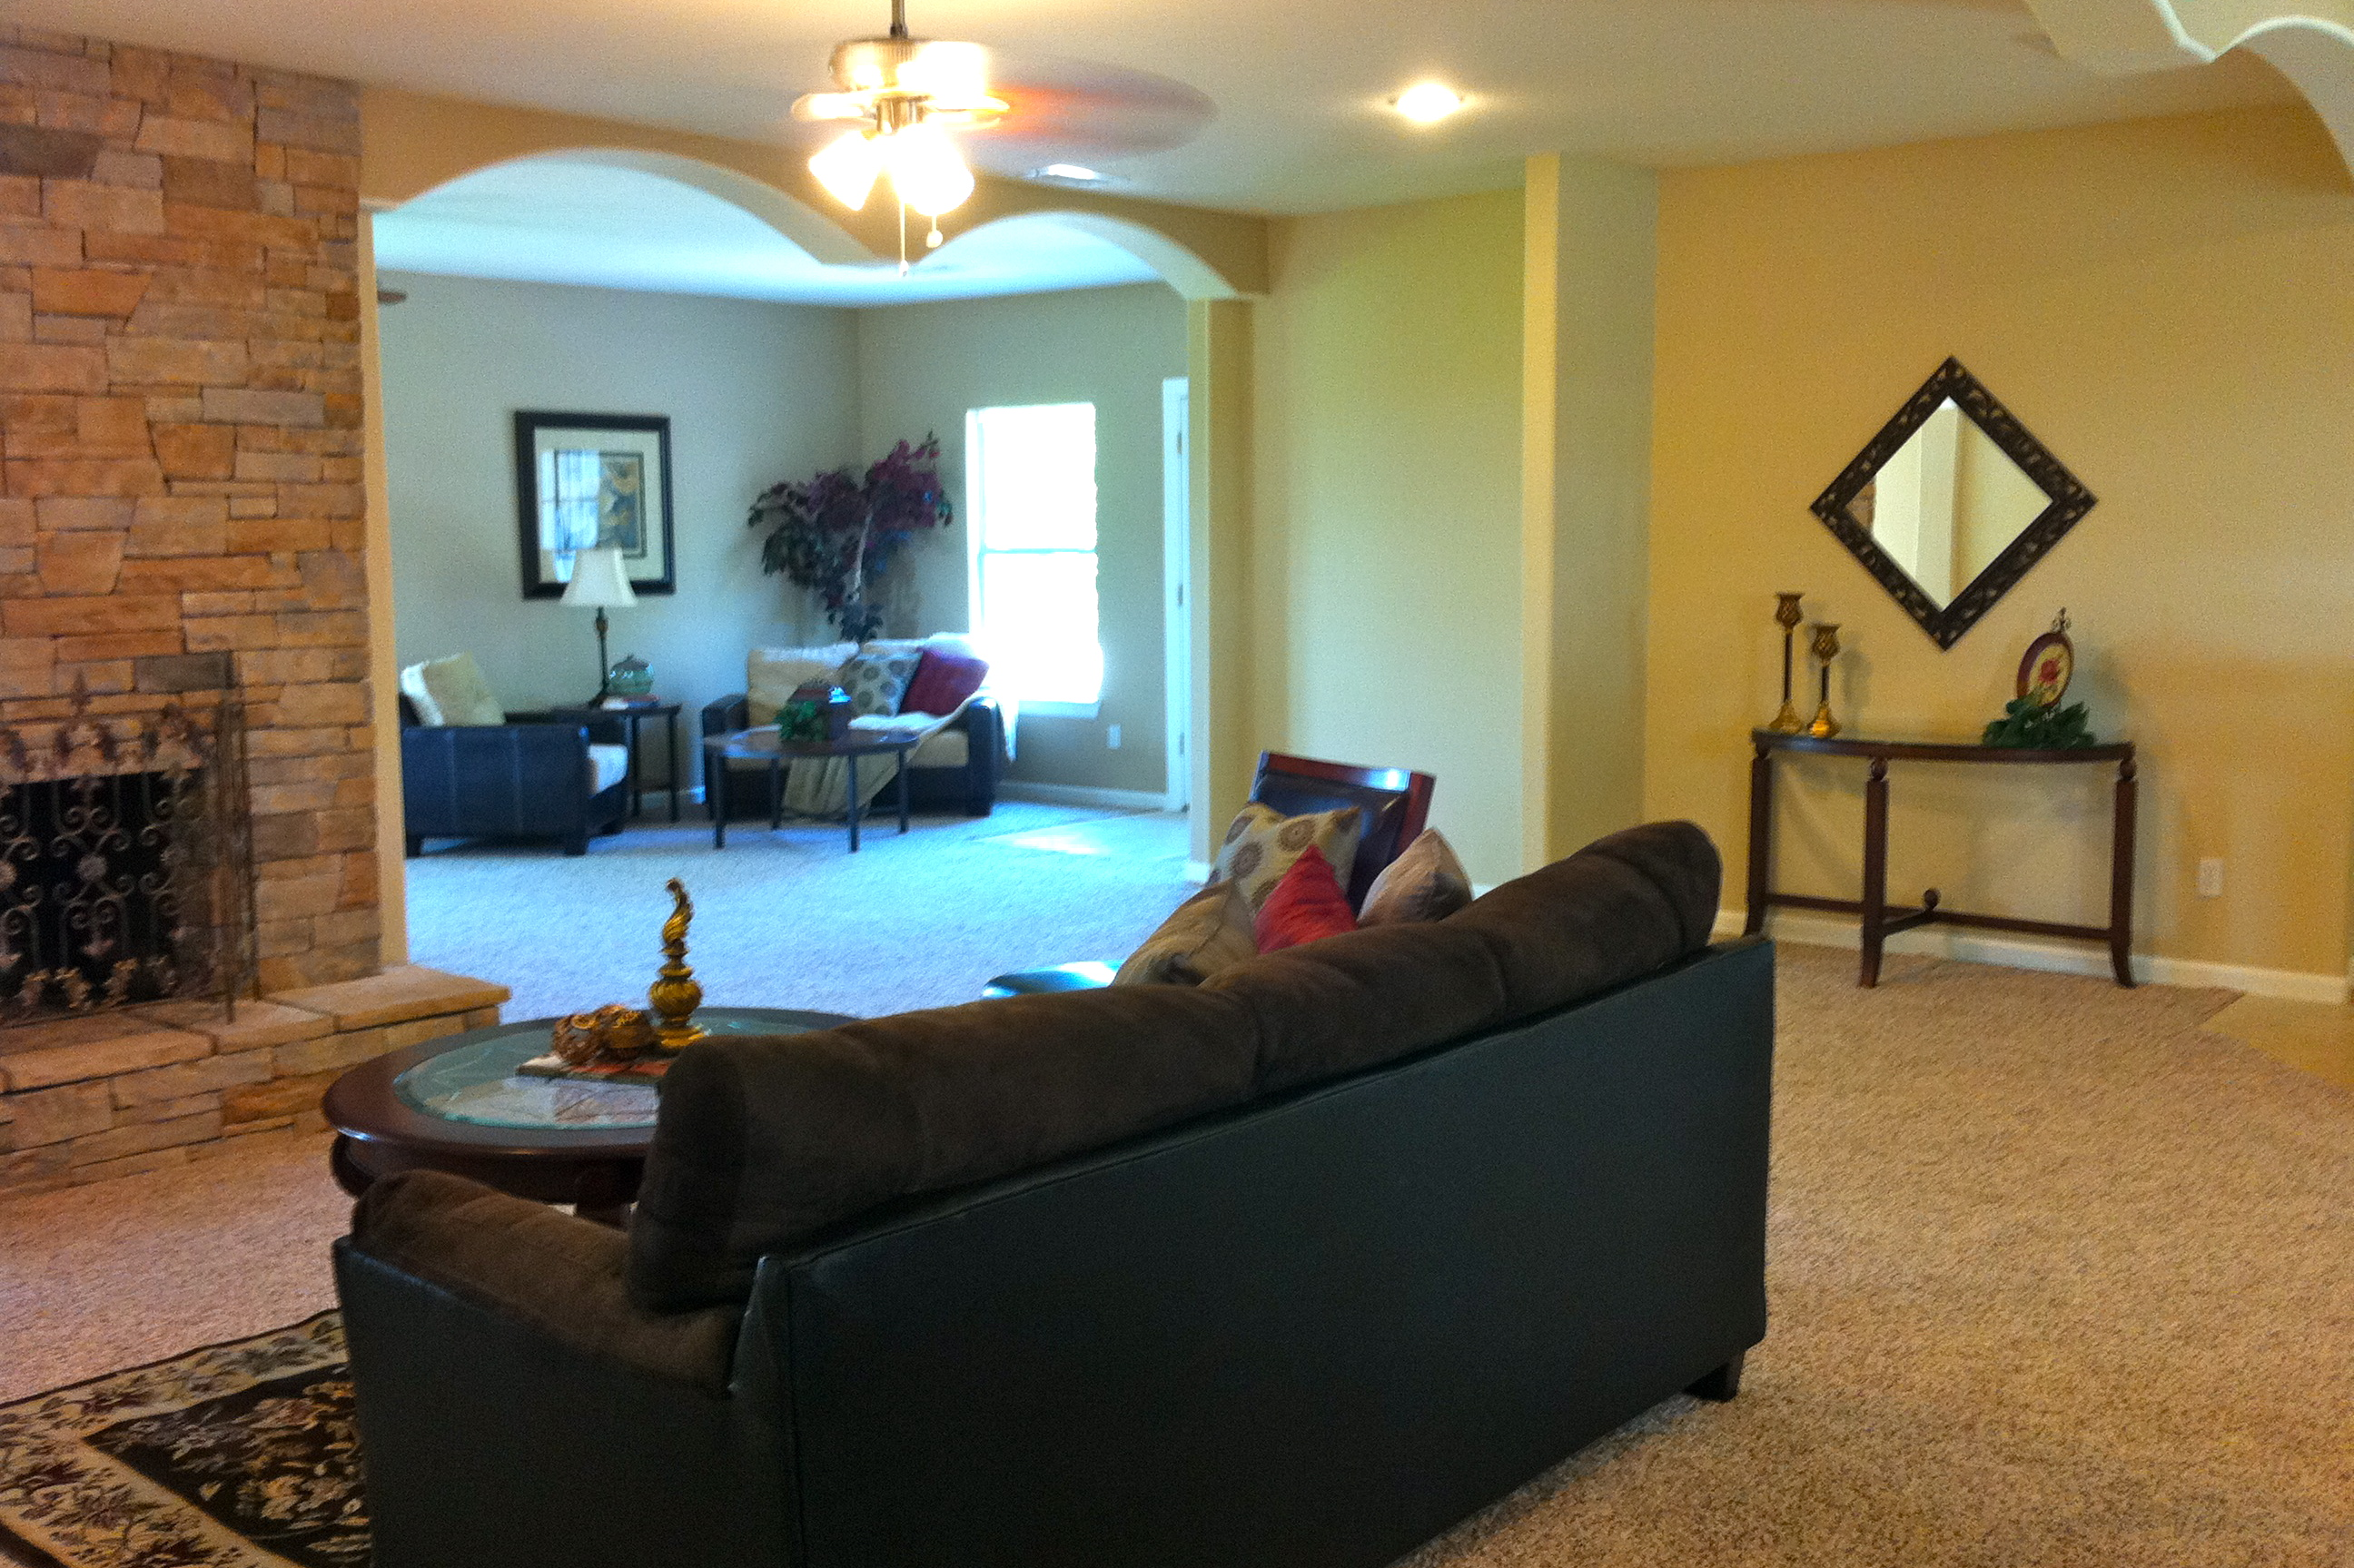 Certified home preparation advisor home staging training for re agents and - Home staging definition ...